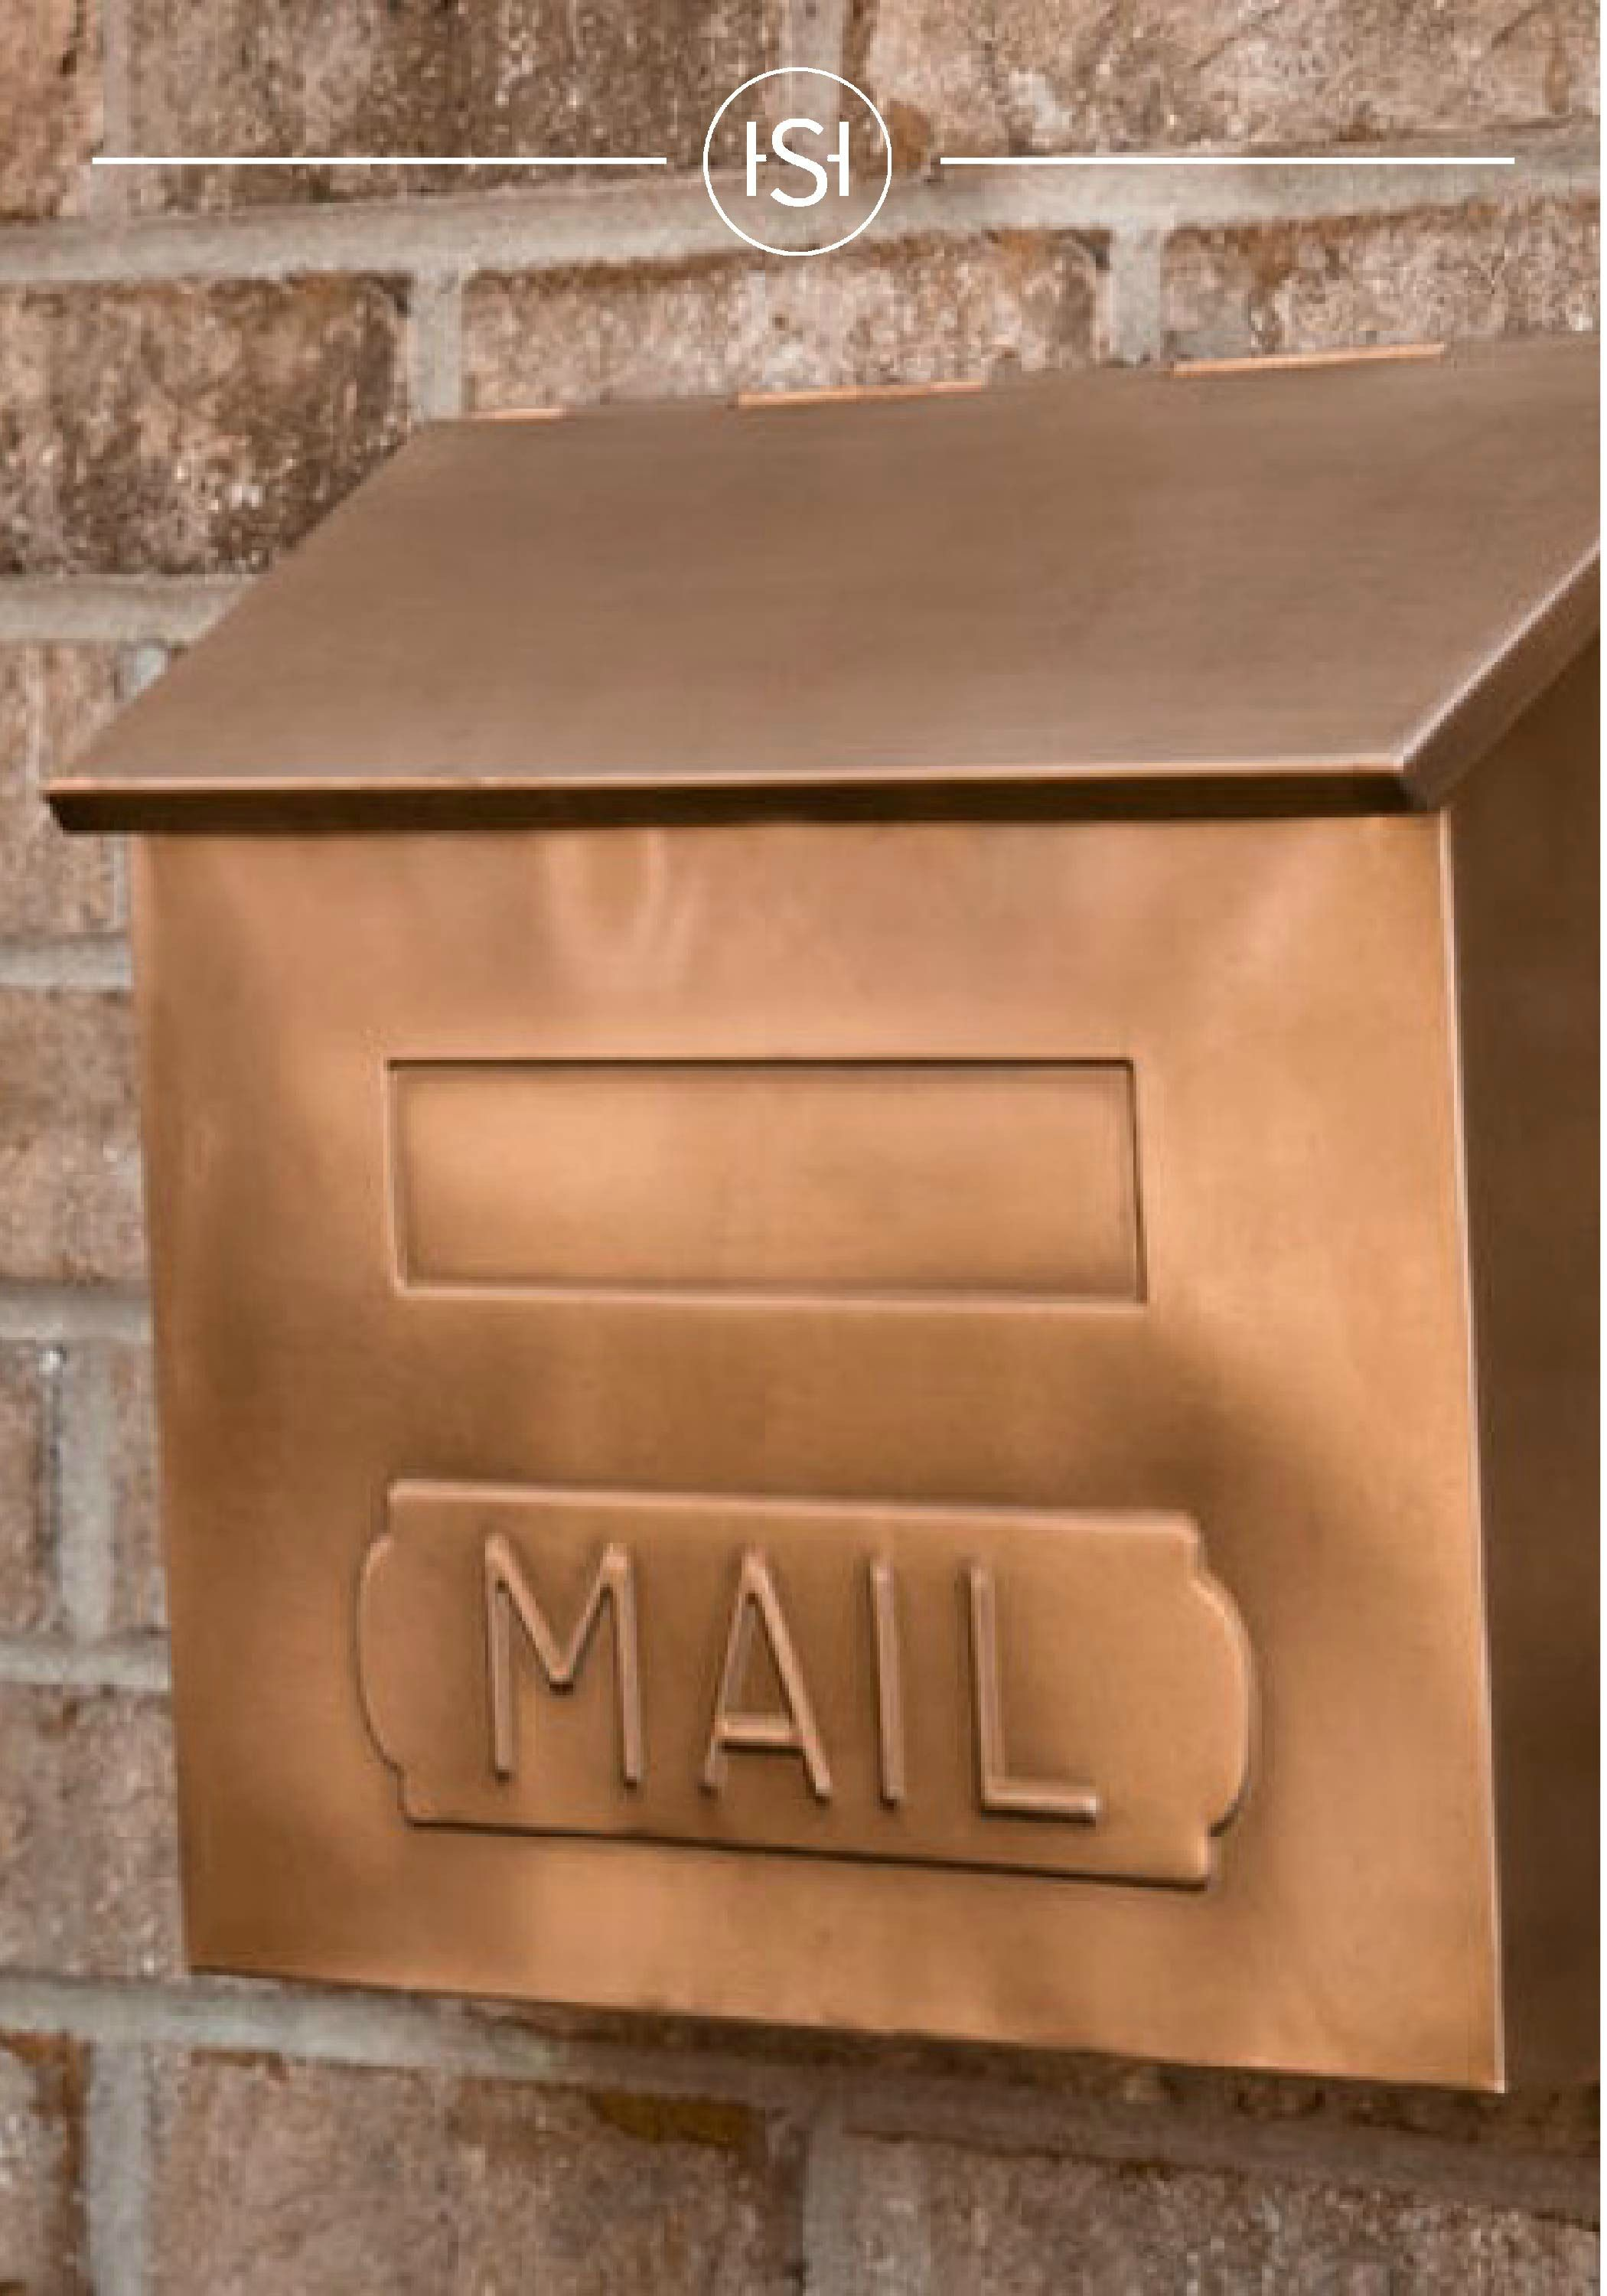 Horizontal Mail Wall Mount Copper Mailbox Antique Copper Mailboxes And Slots Outdoor Wall Mount Mailbox Copper Mailbox Wall Mounted Mailbox